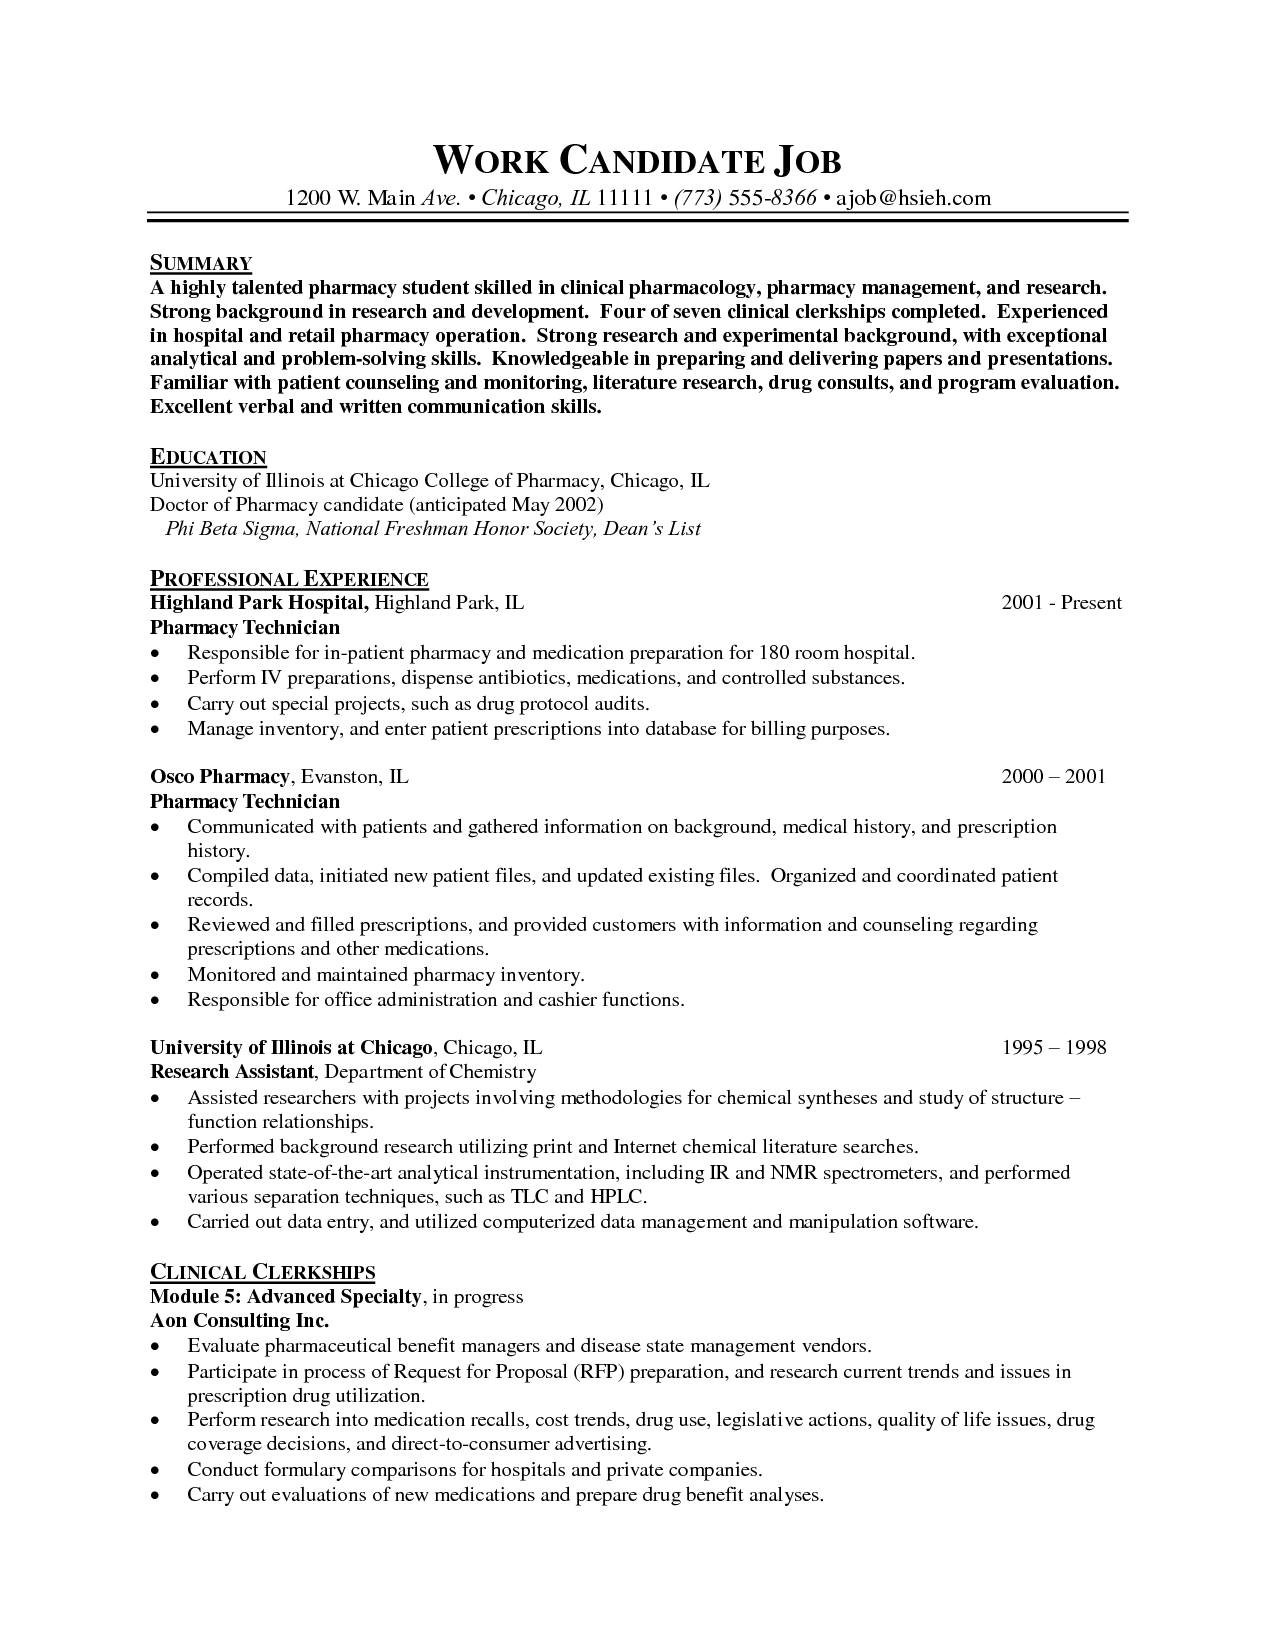 Management Resume Samples Professional Resume Cover Letter Sample  Get Instant Risk Free